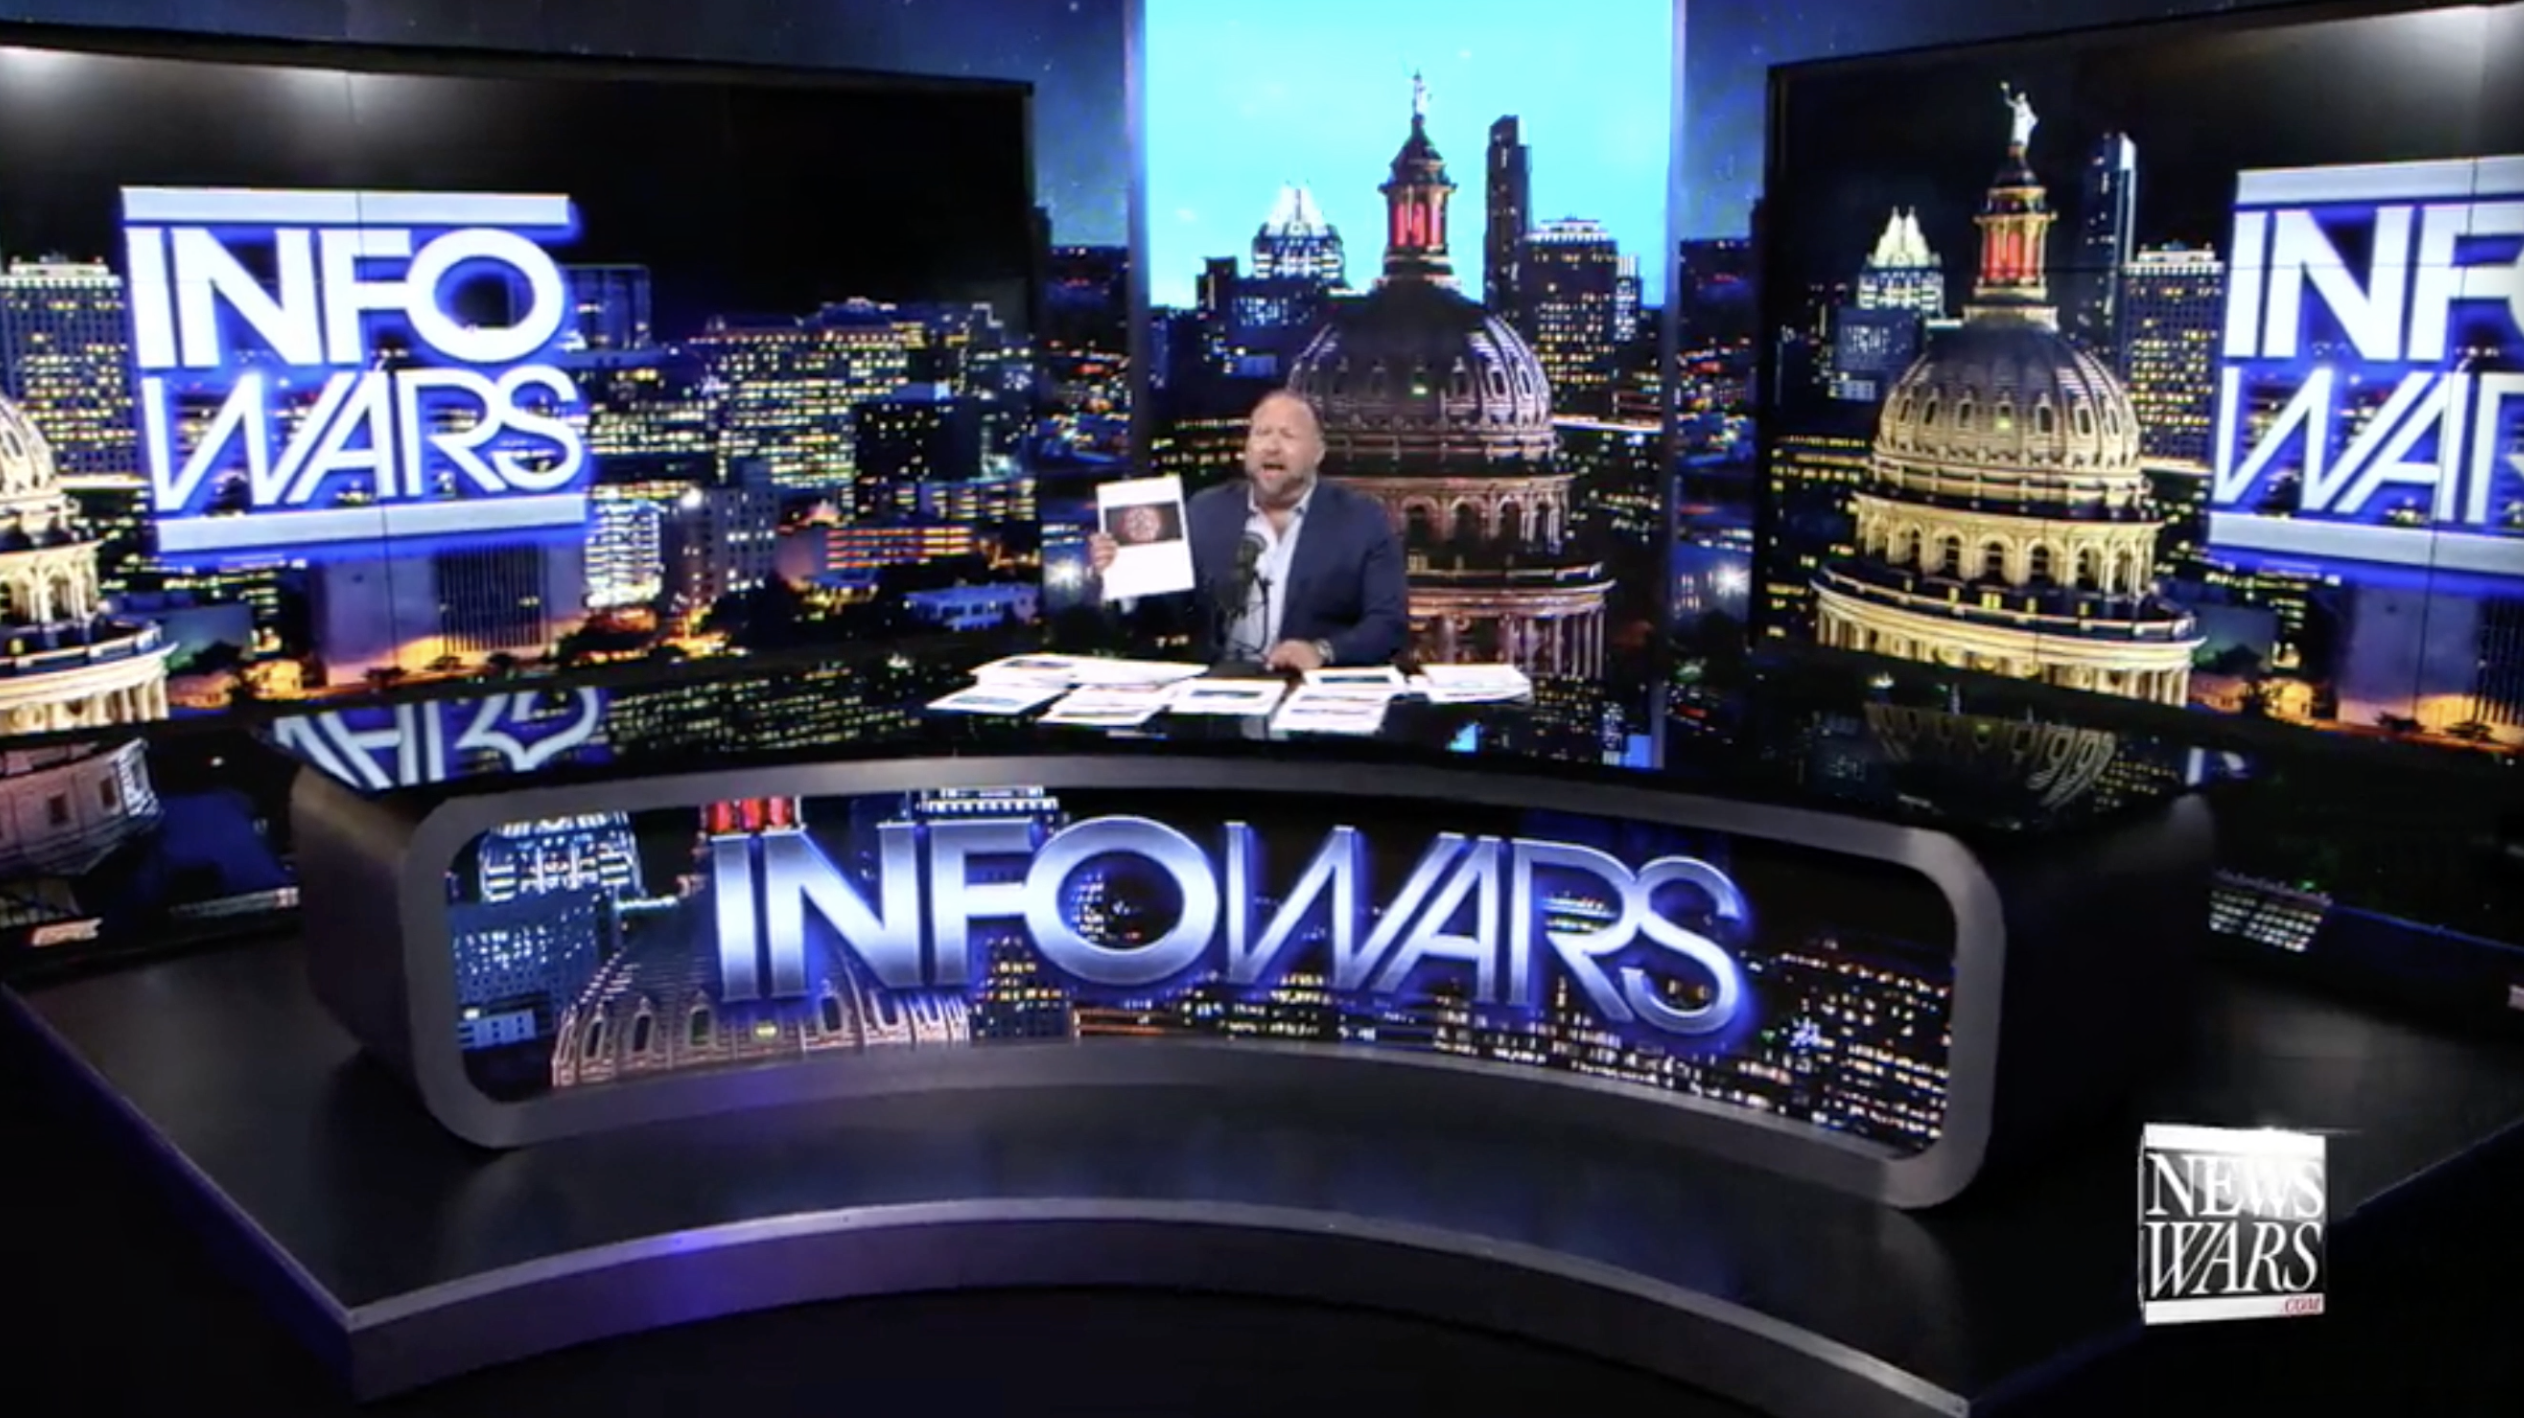 Alex Jones Infowars Studio WHISTLEBLOWERS CONFIRM CHINA RELEASED COVID19 EXZM September 16th 2020